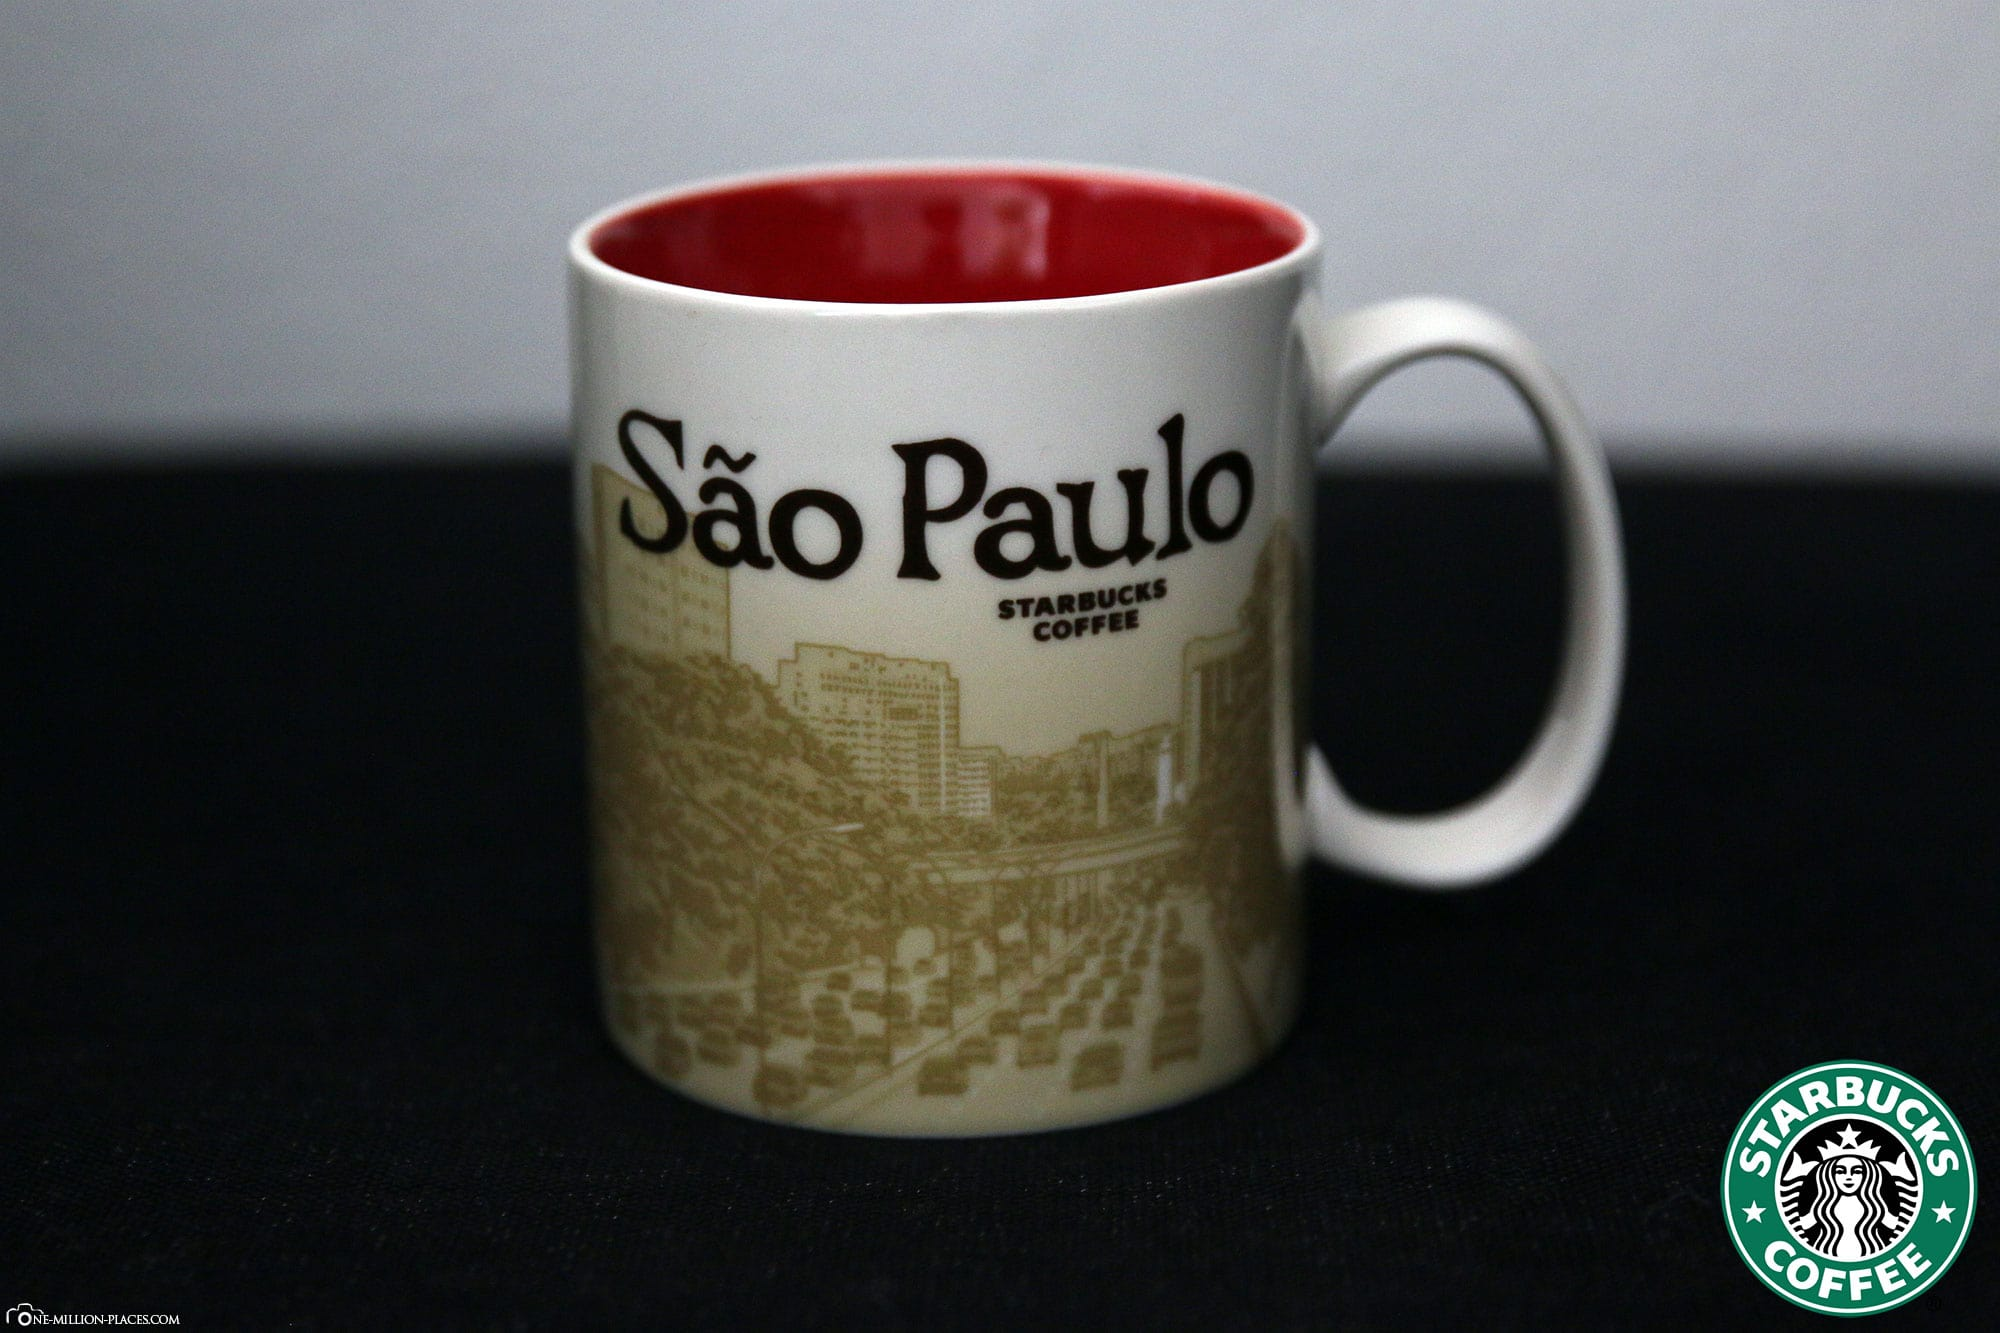 Sao Paulo, Starbucks Cup, Global Icon Series, City Mugs, Collection, Brazil, Travelreport